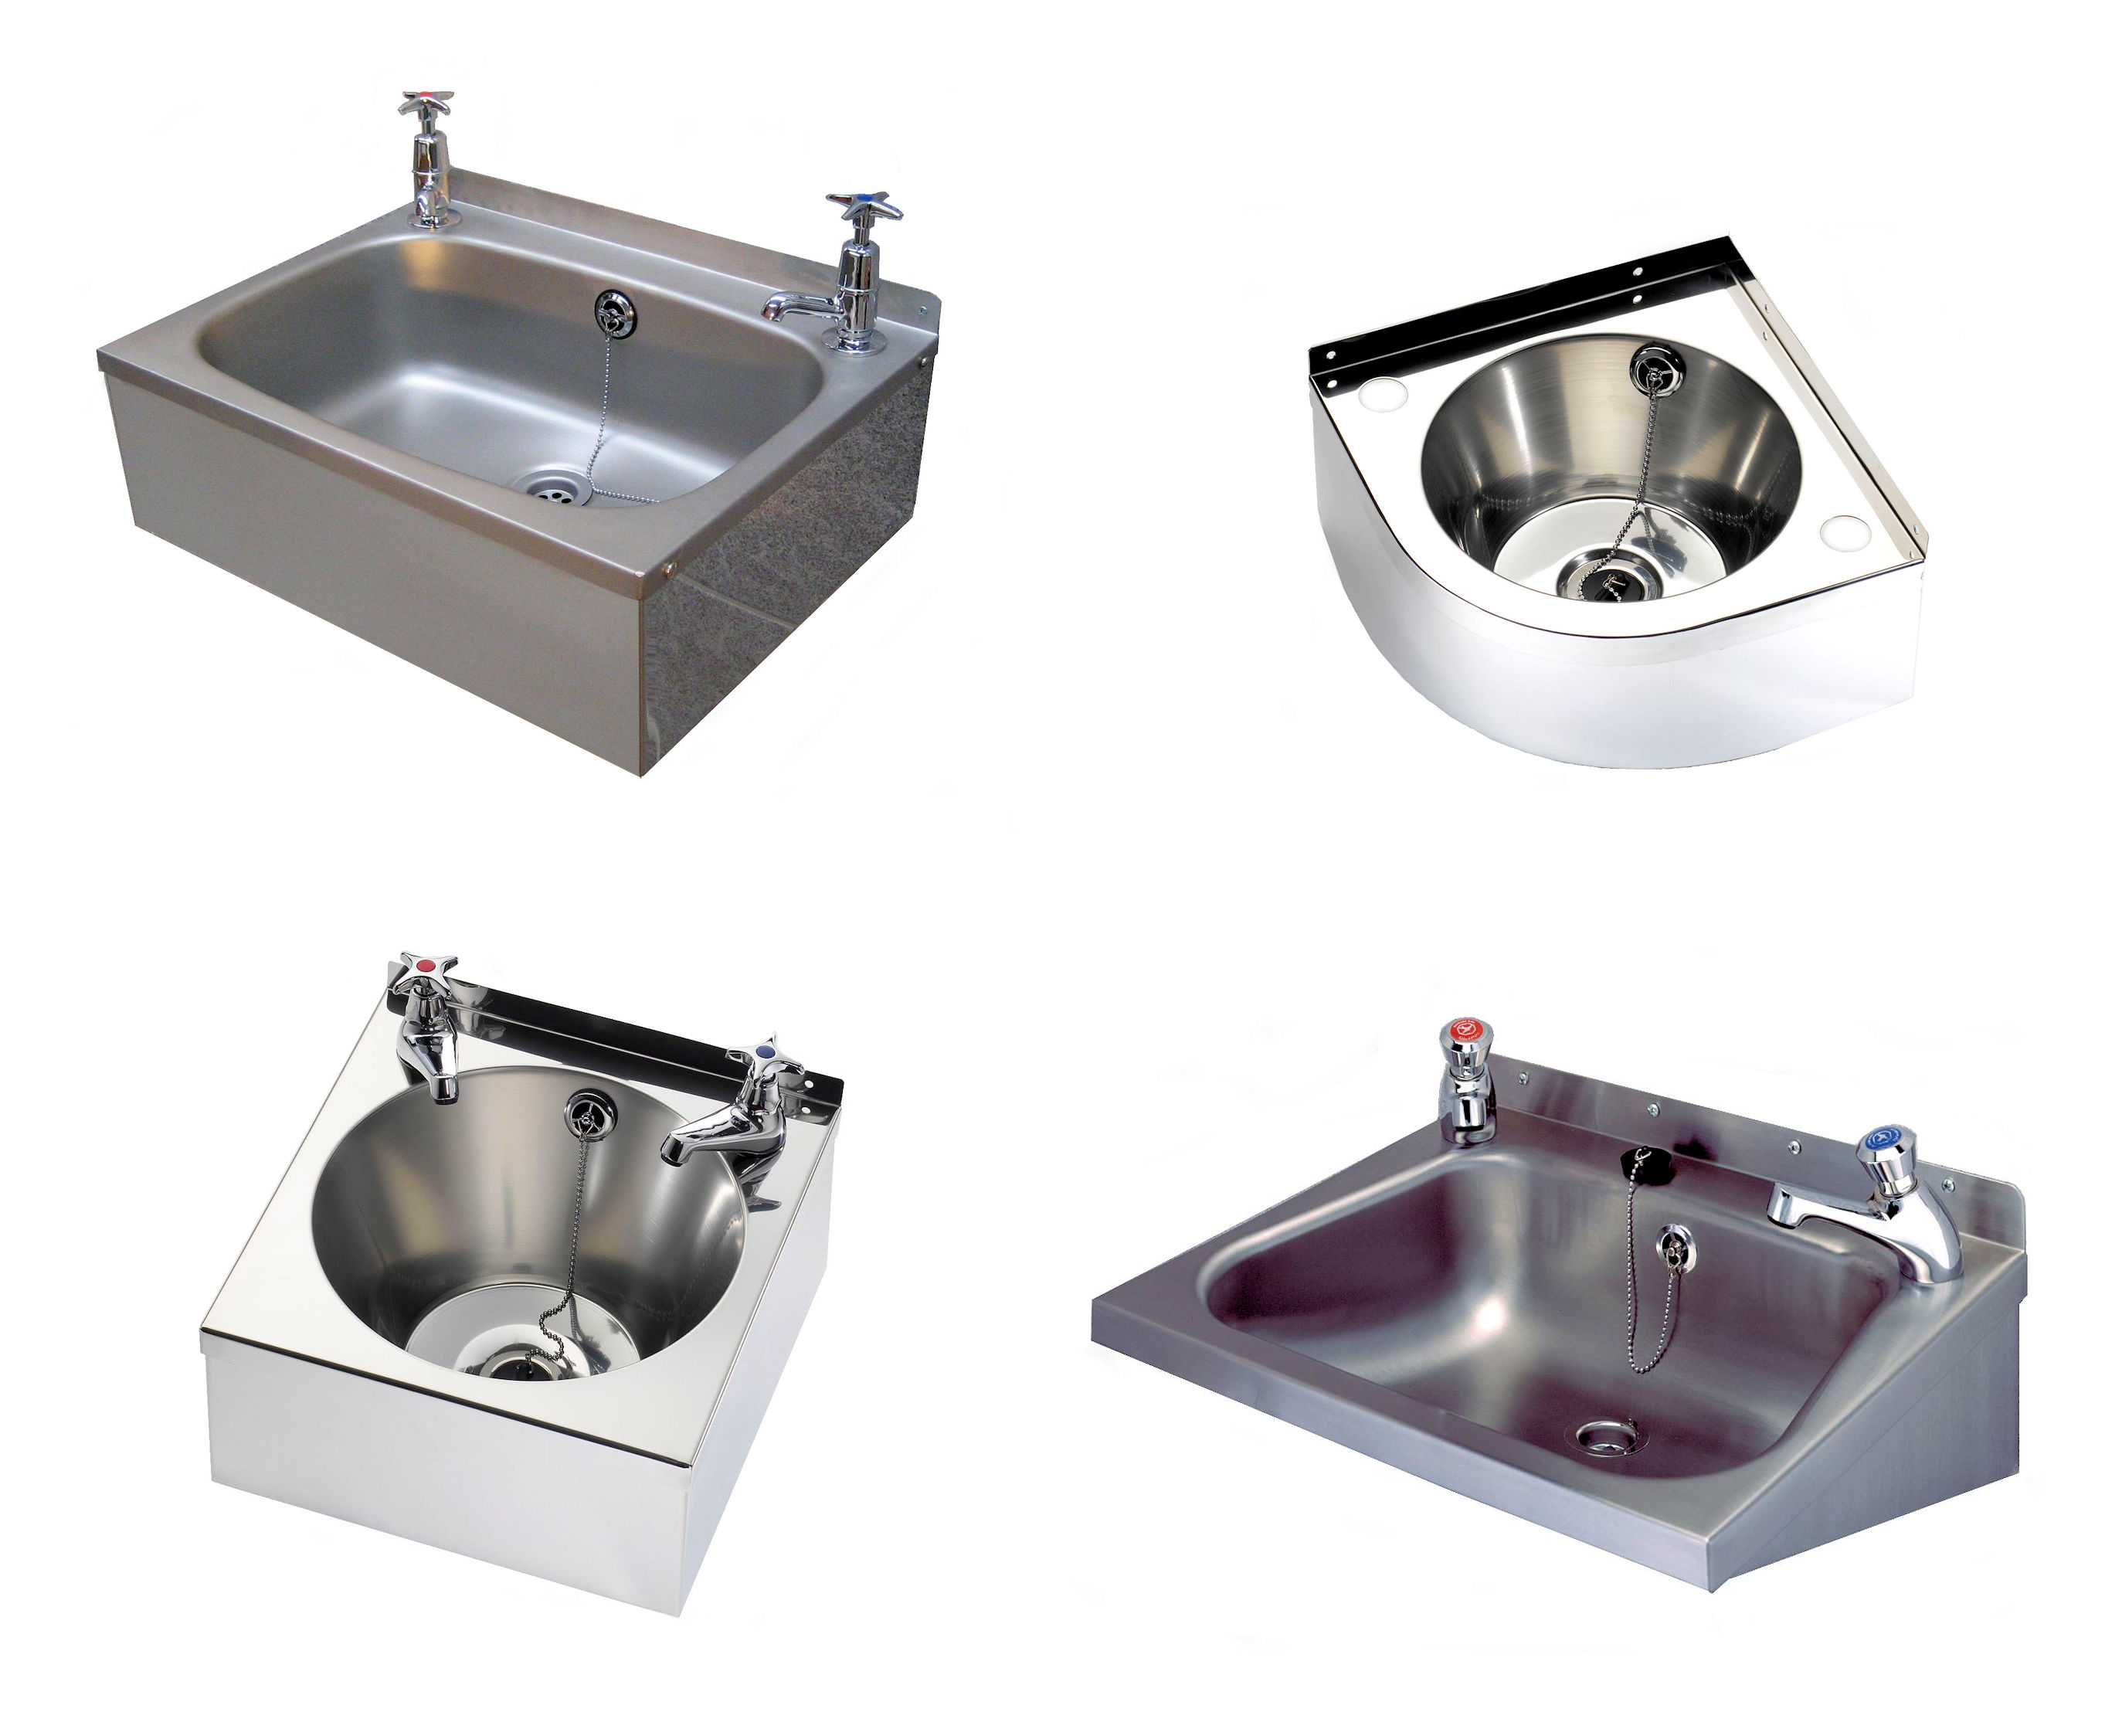 Wall Mounted Wash Basins image